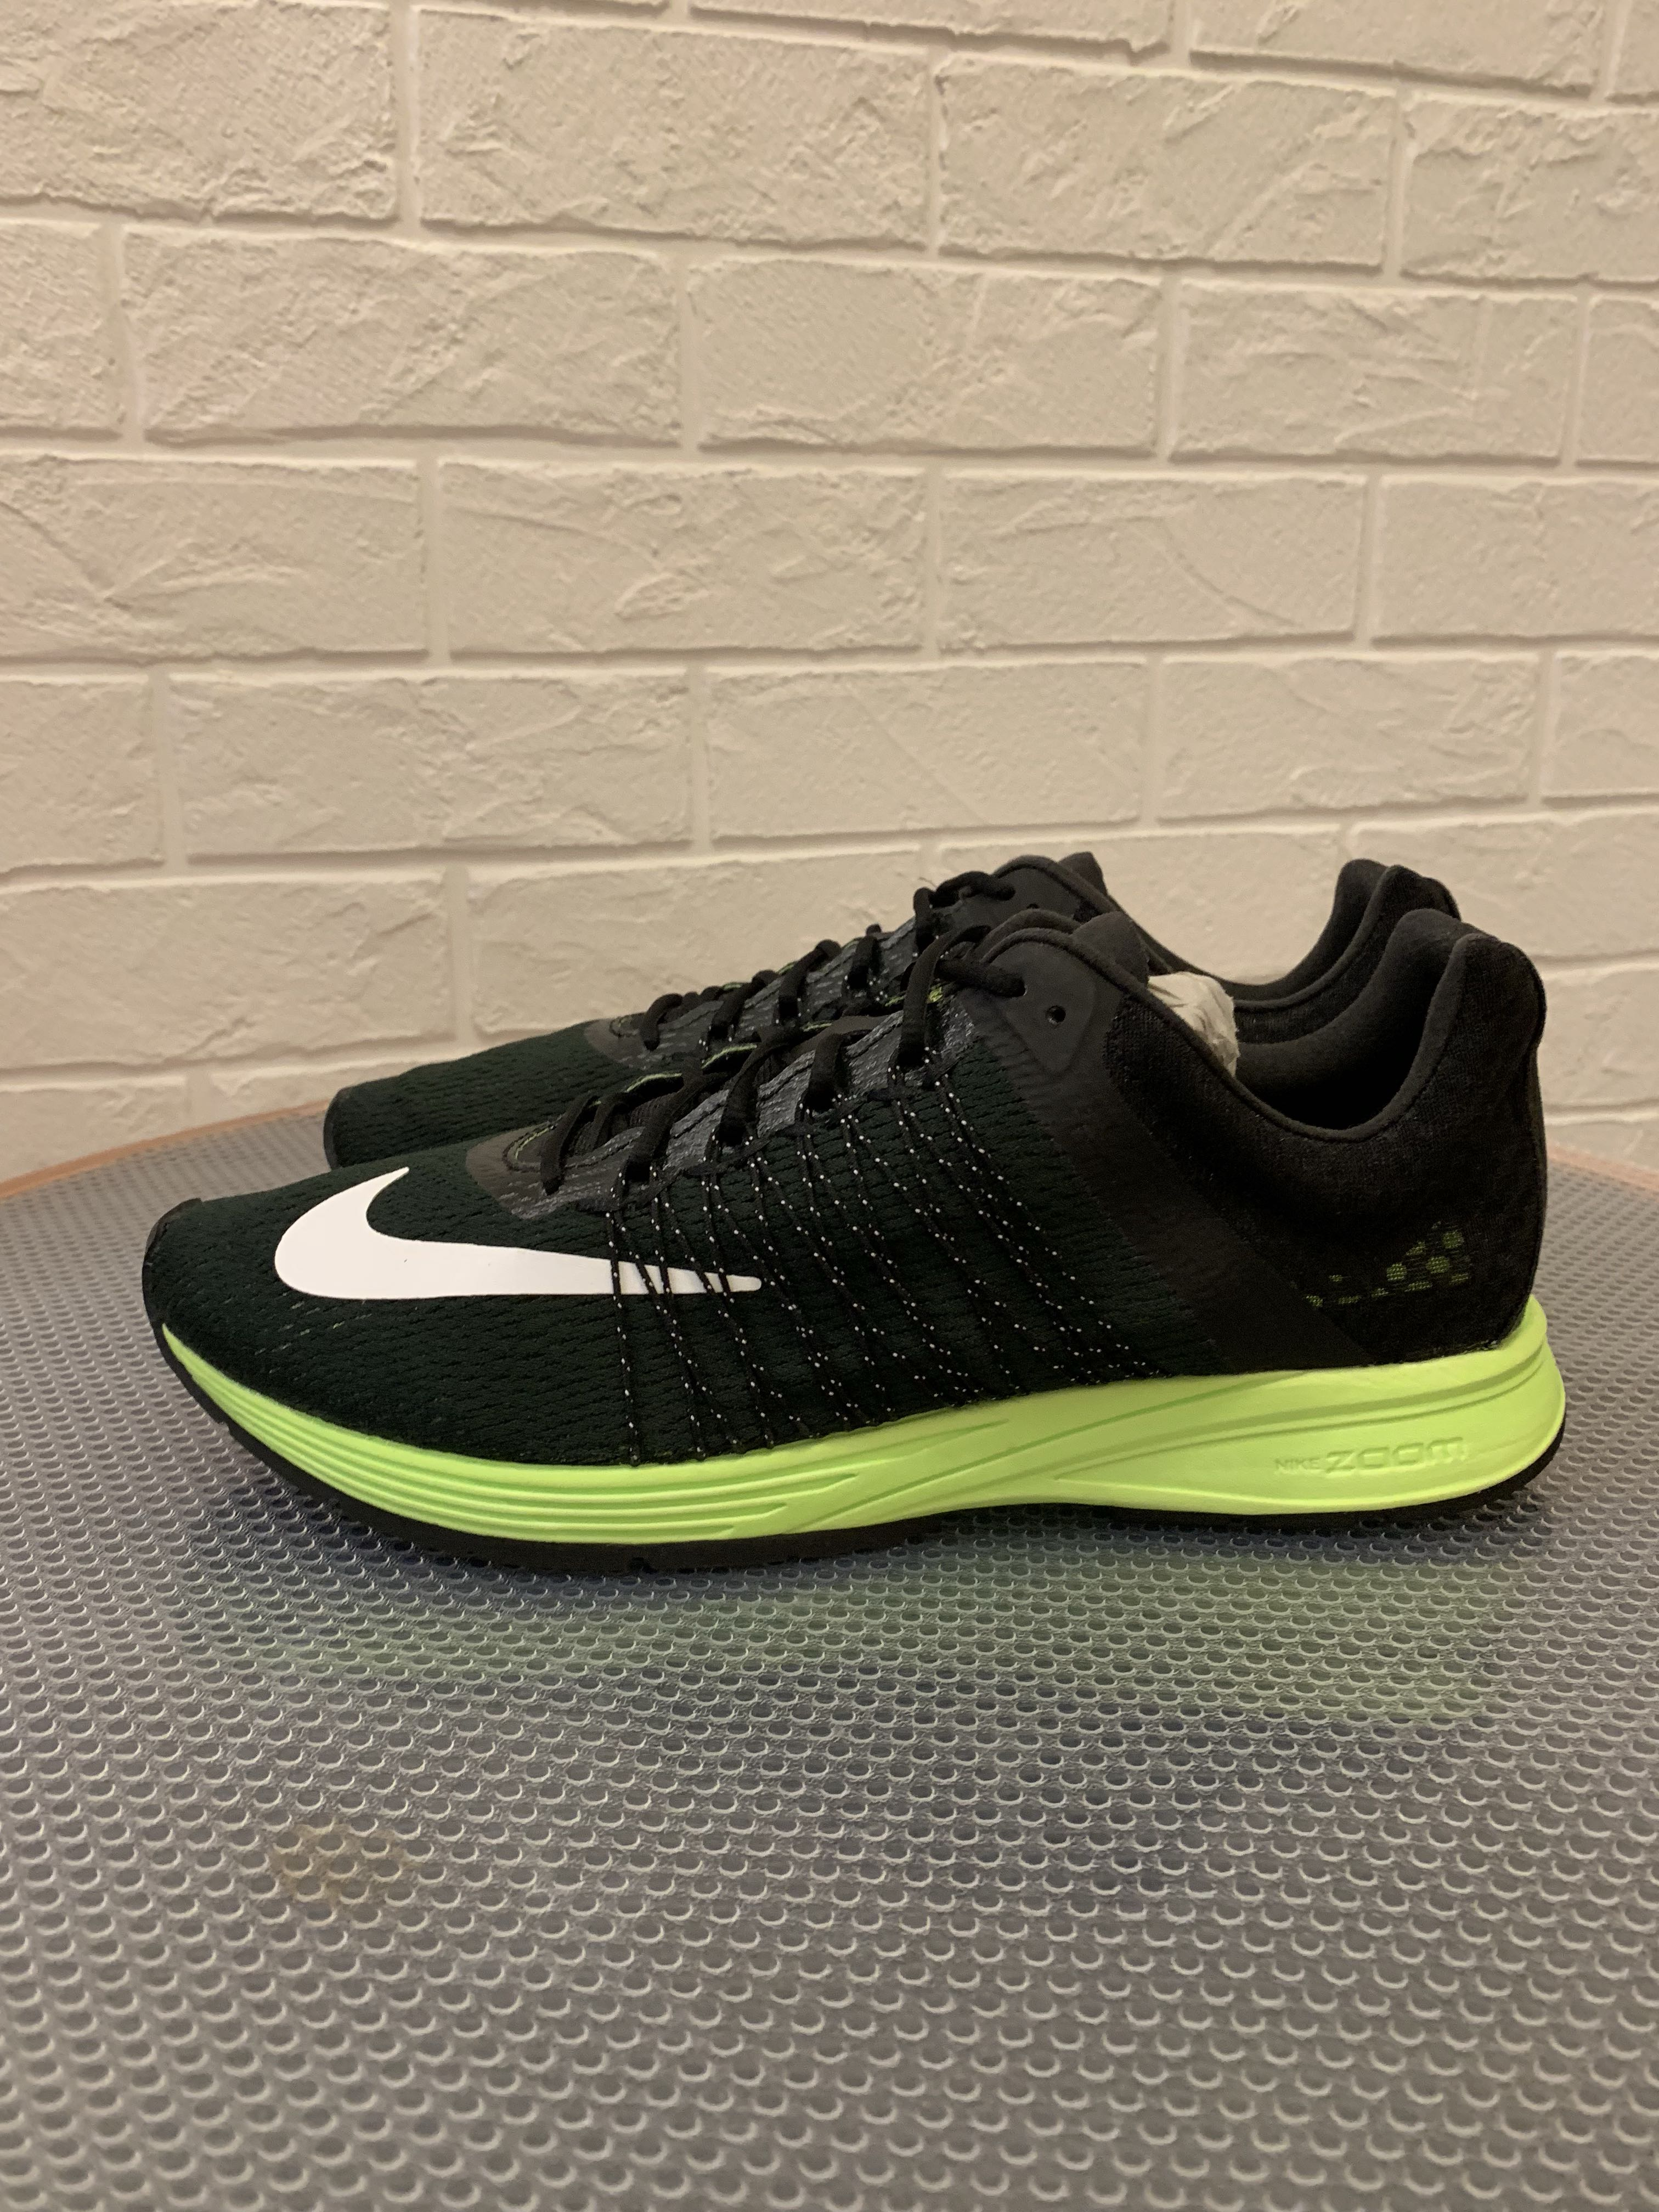 45d163199f3 Price Reduced  Nike Air Zoom Streak 5 Running Shoes